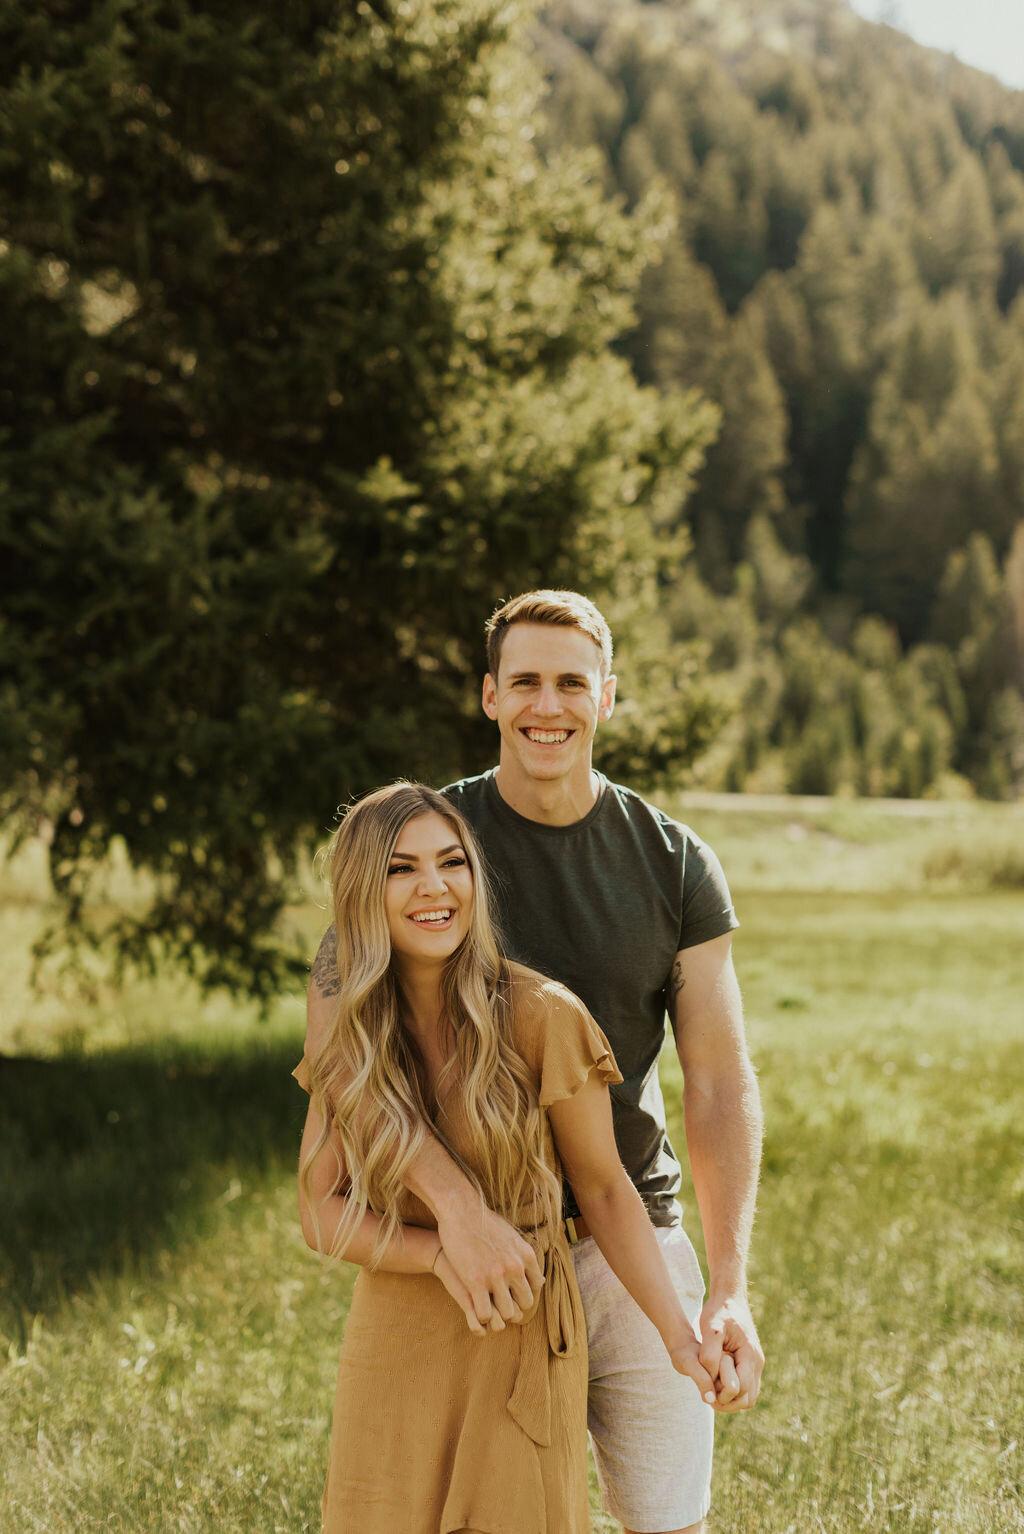 mountain-engagement-session-provo-utah-kyle-and-taylor-15.jpg